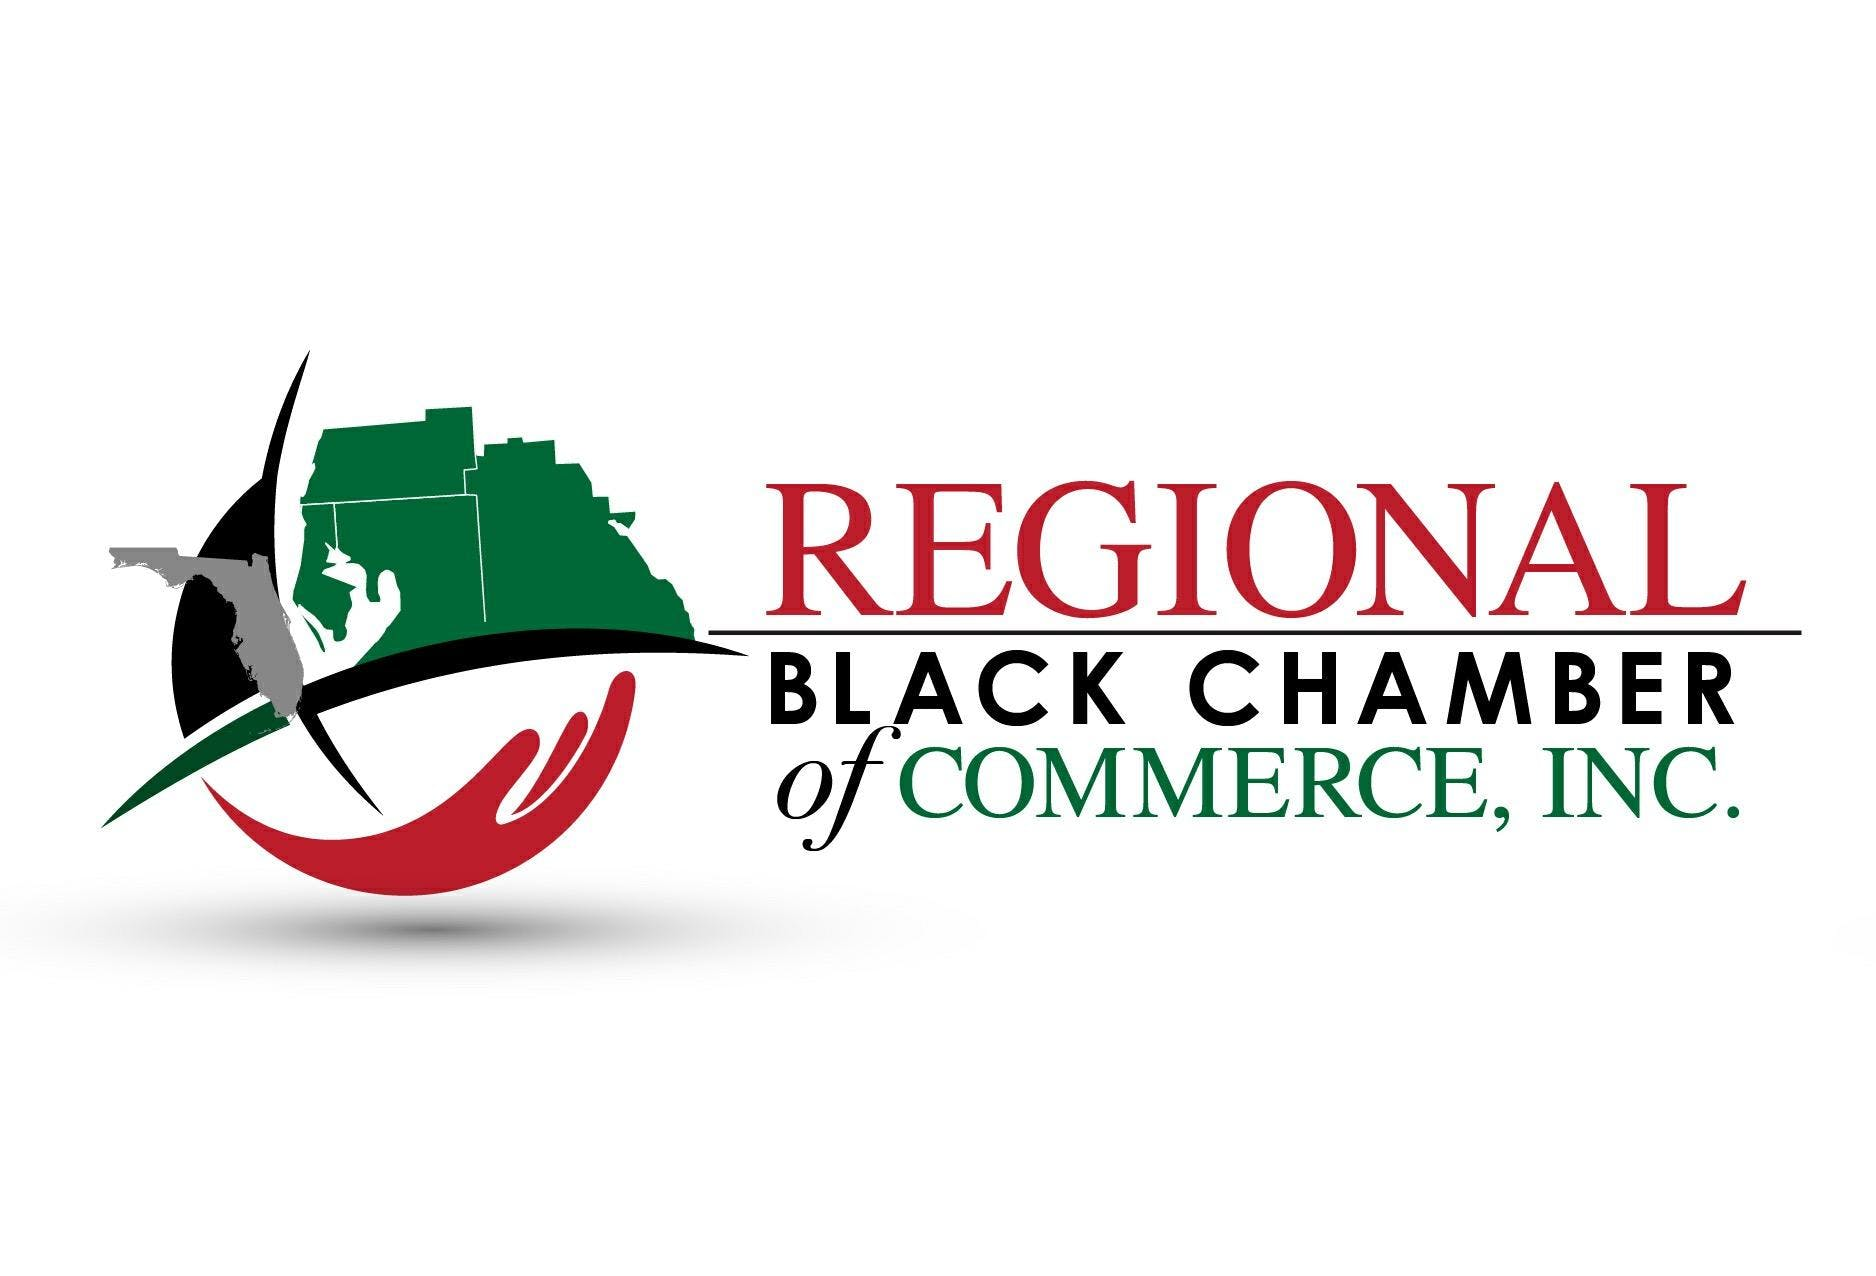 Regional Black Chamber Minority Business Enterprise Certification